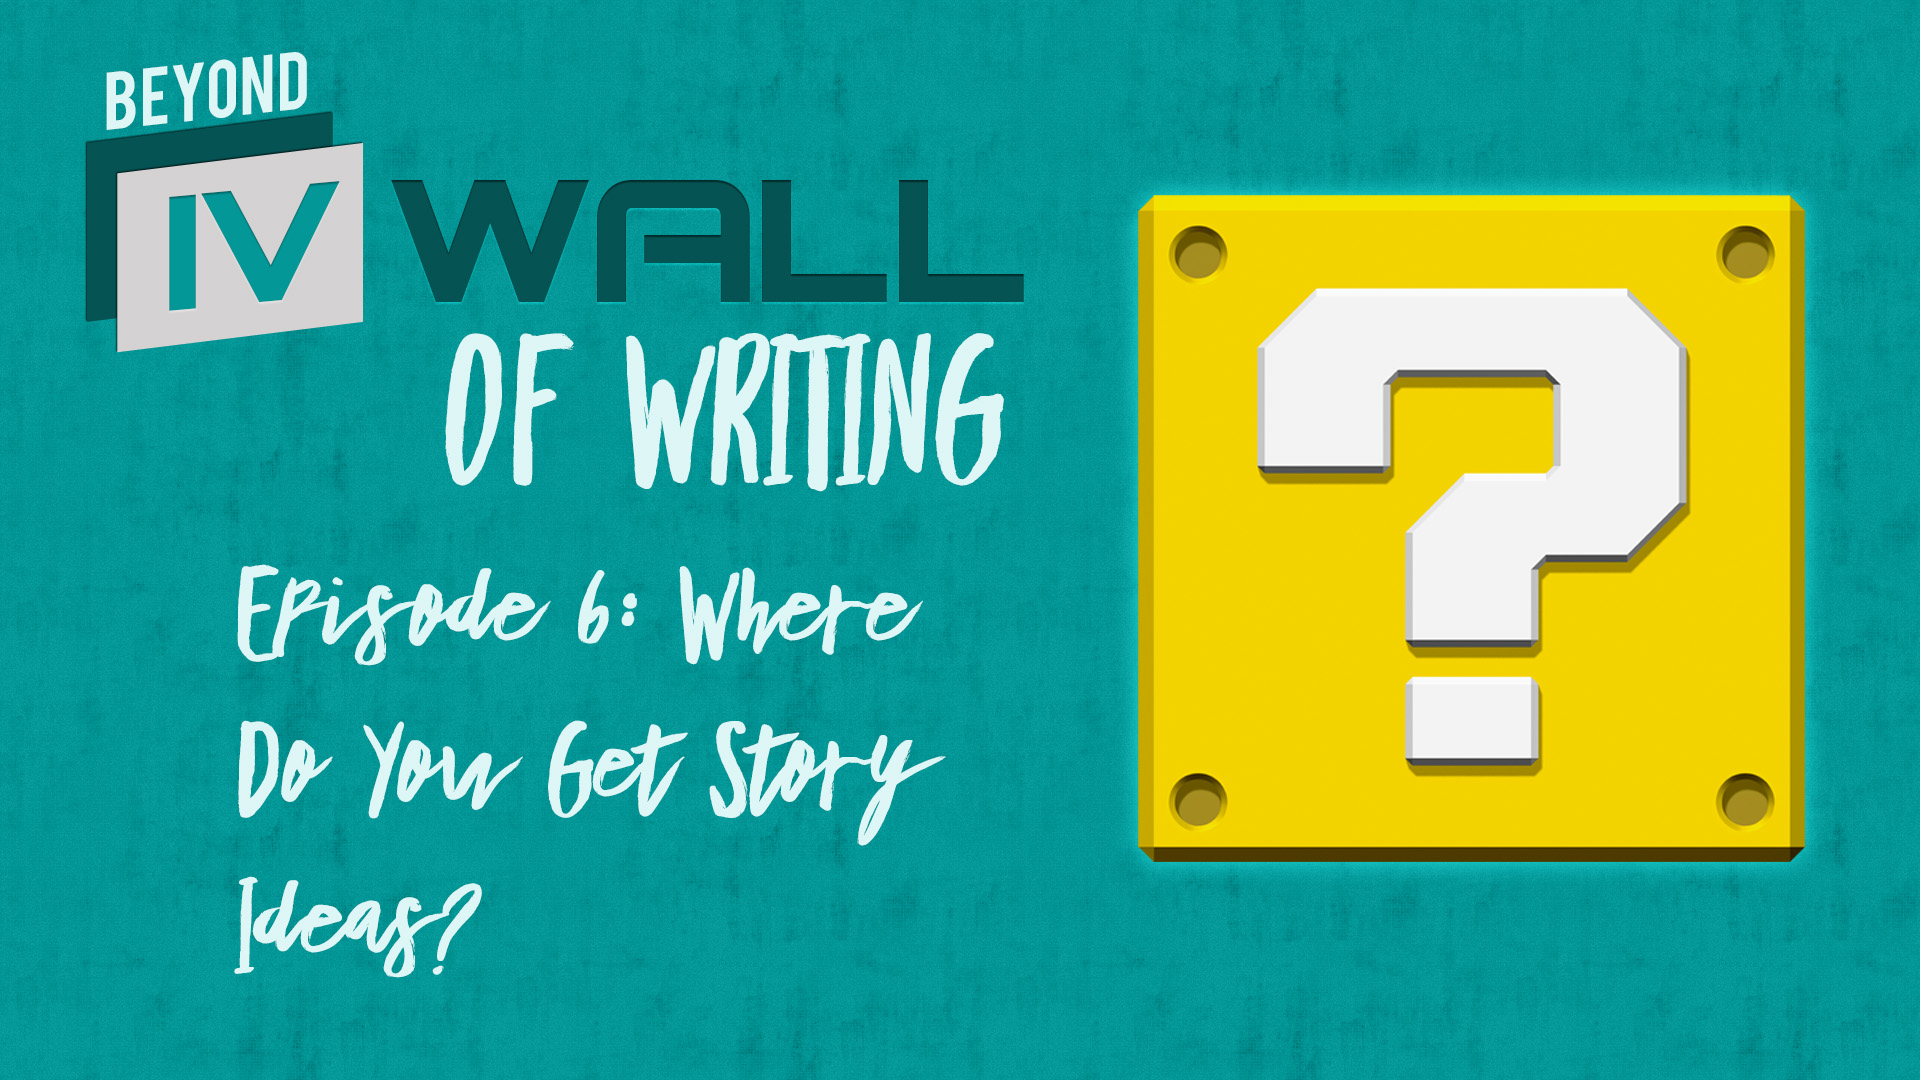 Beyond the IVWall of Writing: Episode 6- Where Do You Get Story Ideas?